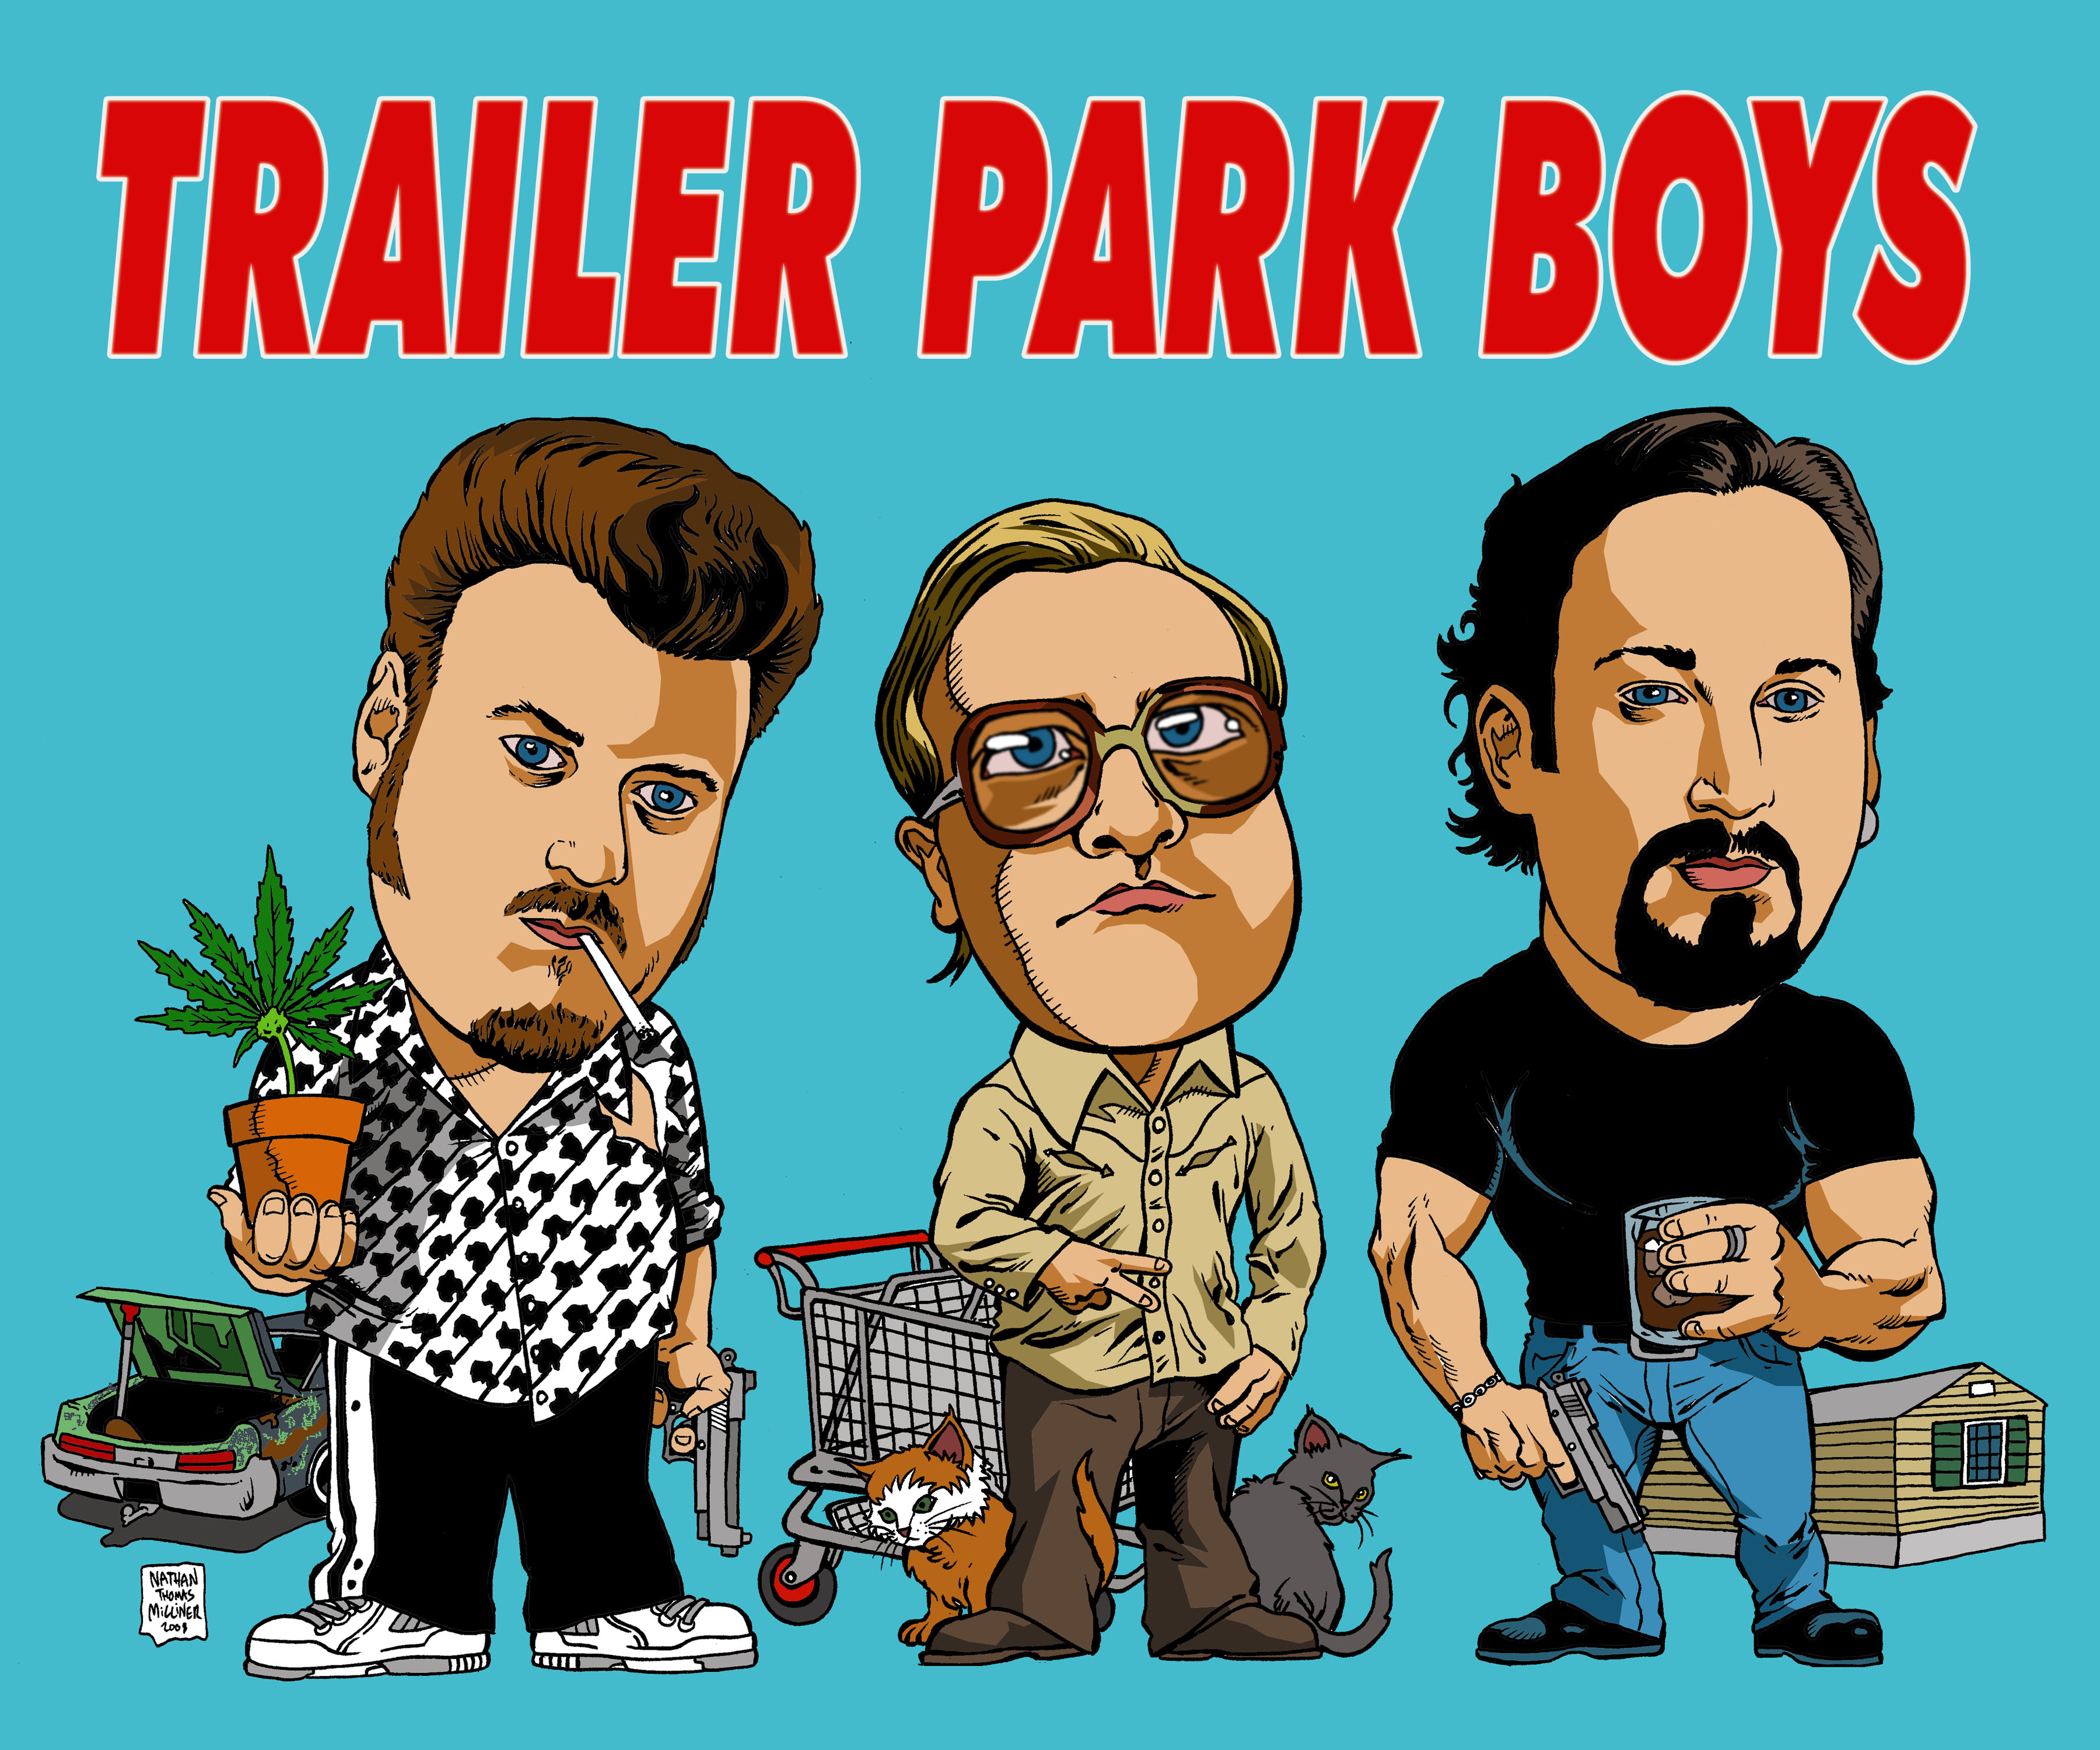 An amazing wallpaper trailerparkboys - Amazing wallpapers for boys ...